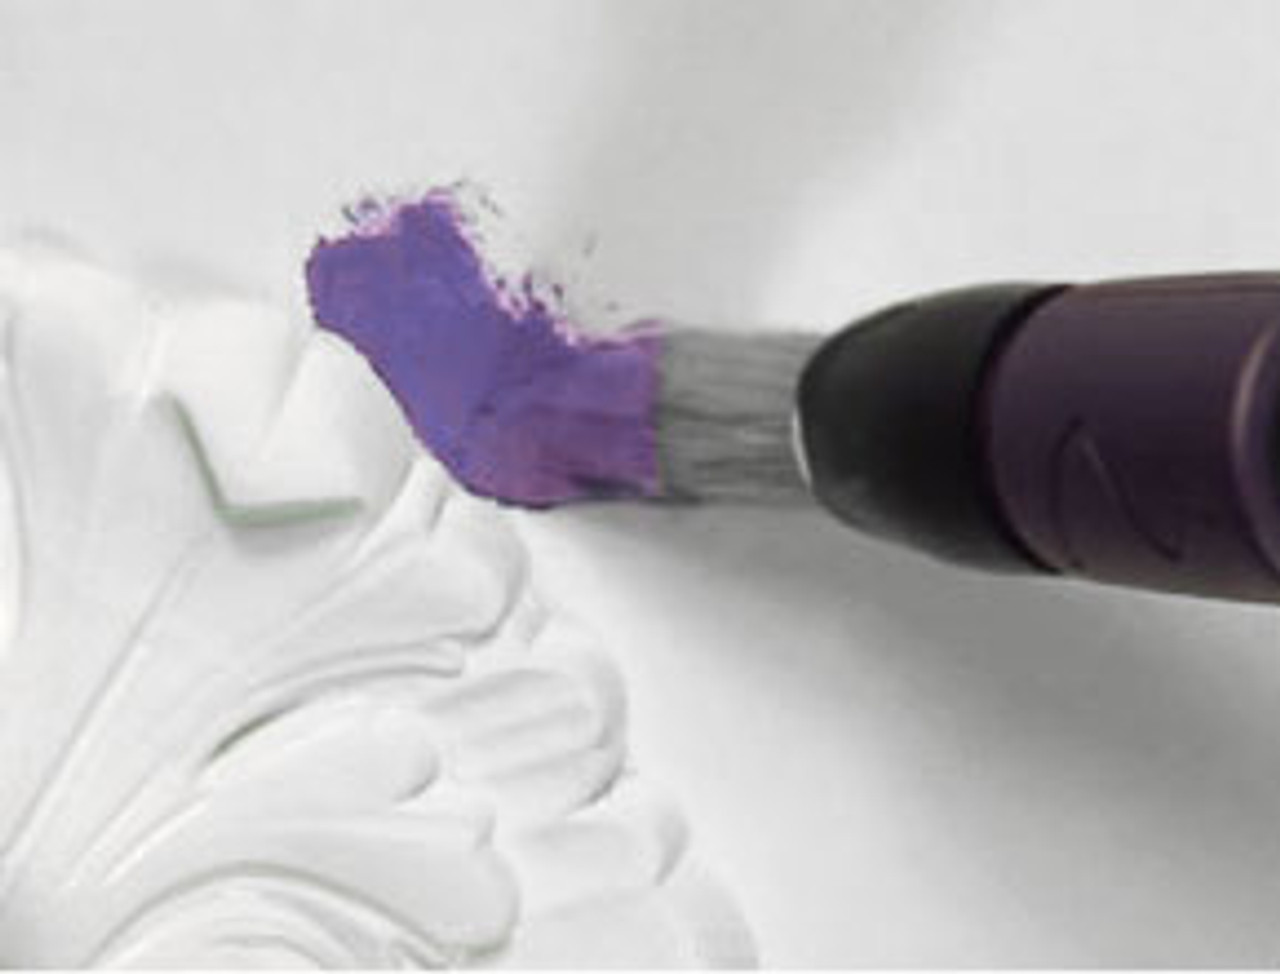 Wipic Electric Vibrating Paint Brush for cutting in edging and trimming